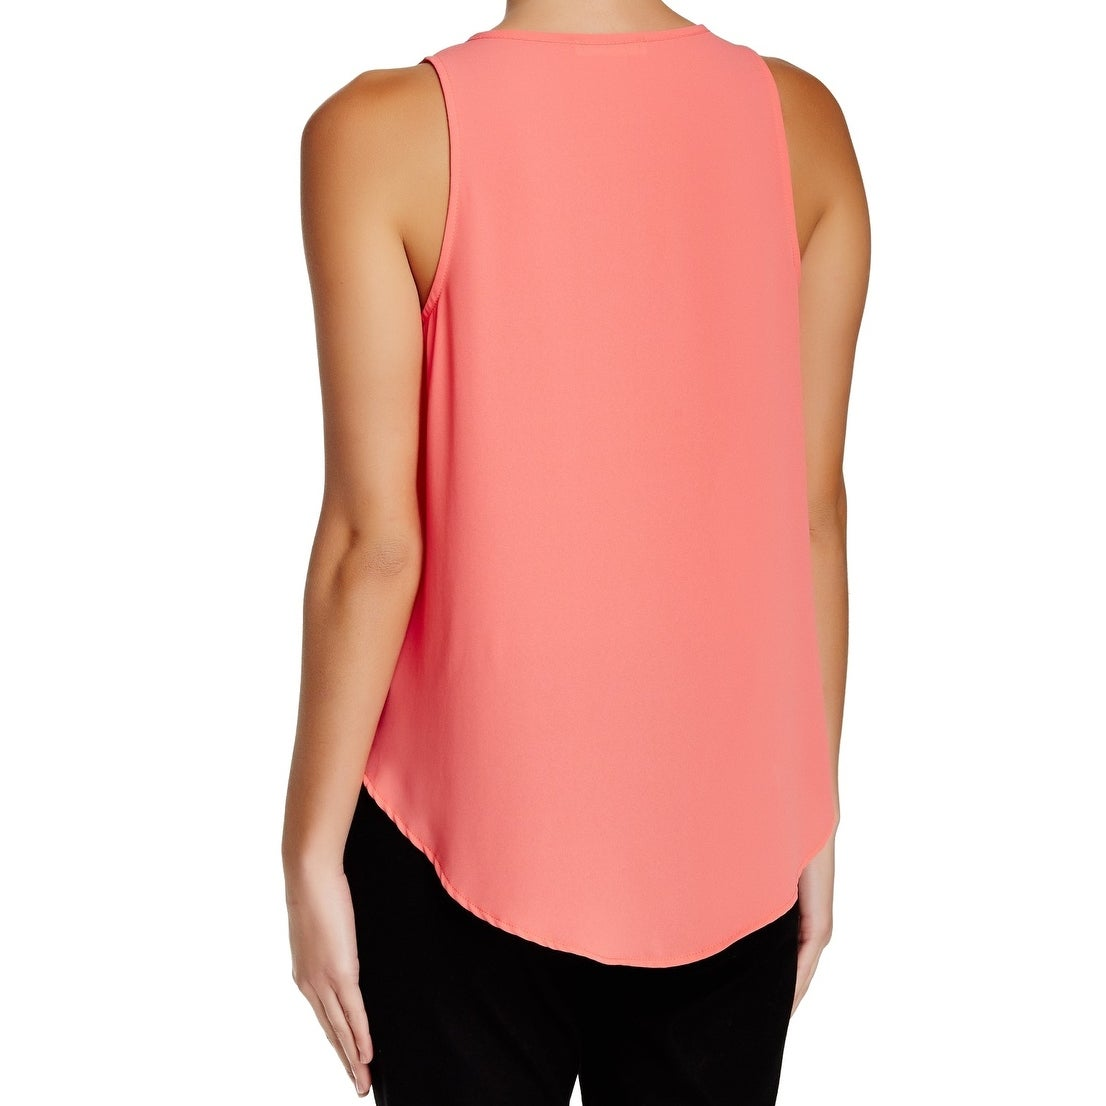 082d68842c Shop Lush NEW Coral Pink Womens Size Small S Split Neck Tank Top Blouse -  Free Shipping On Orders Over $45 - Overstock - 21111909